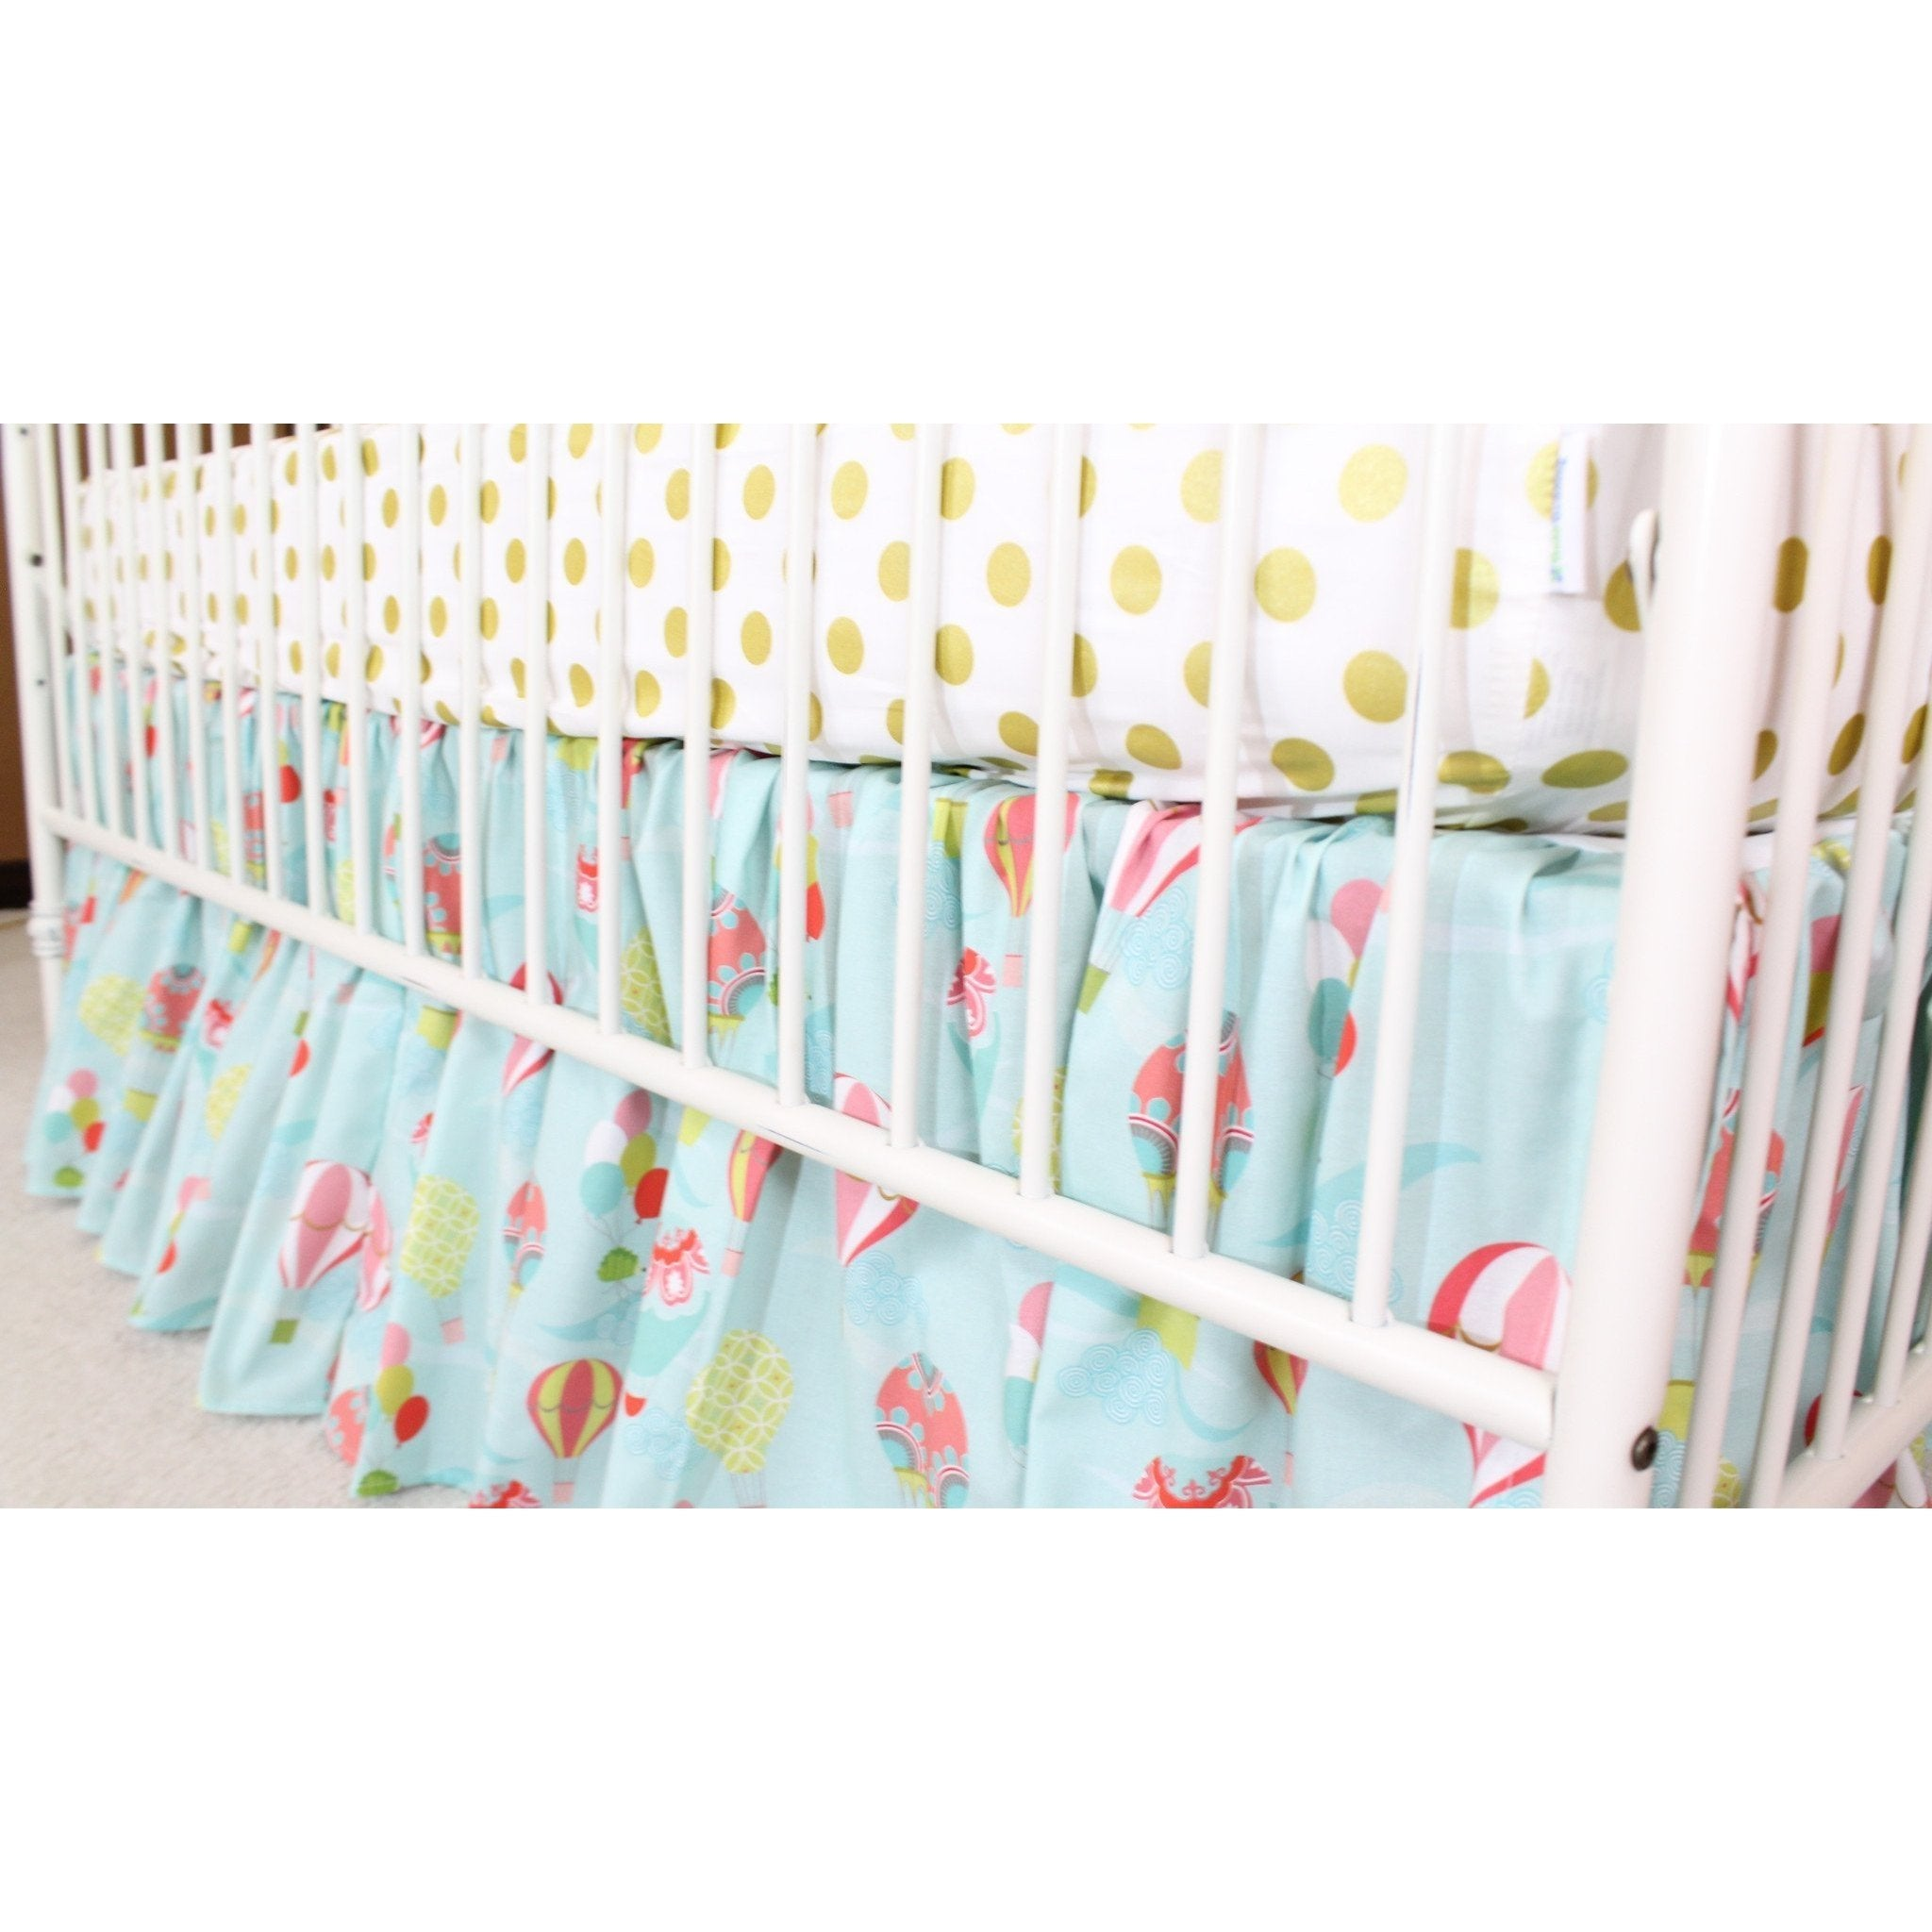 material for bedding baby color animals fascinating cute cradle sheet crib decorating mini girls pink beige pattern white and comforter design fitted polyester theme sets cribs patchwork blankets stylish